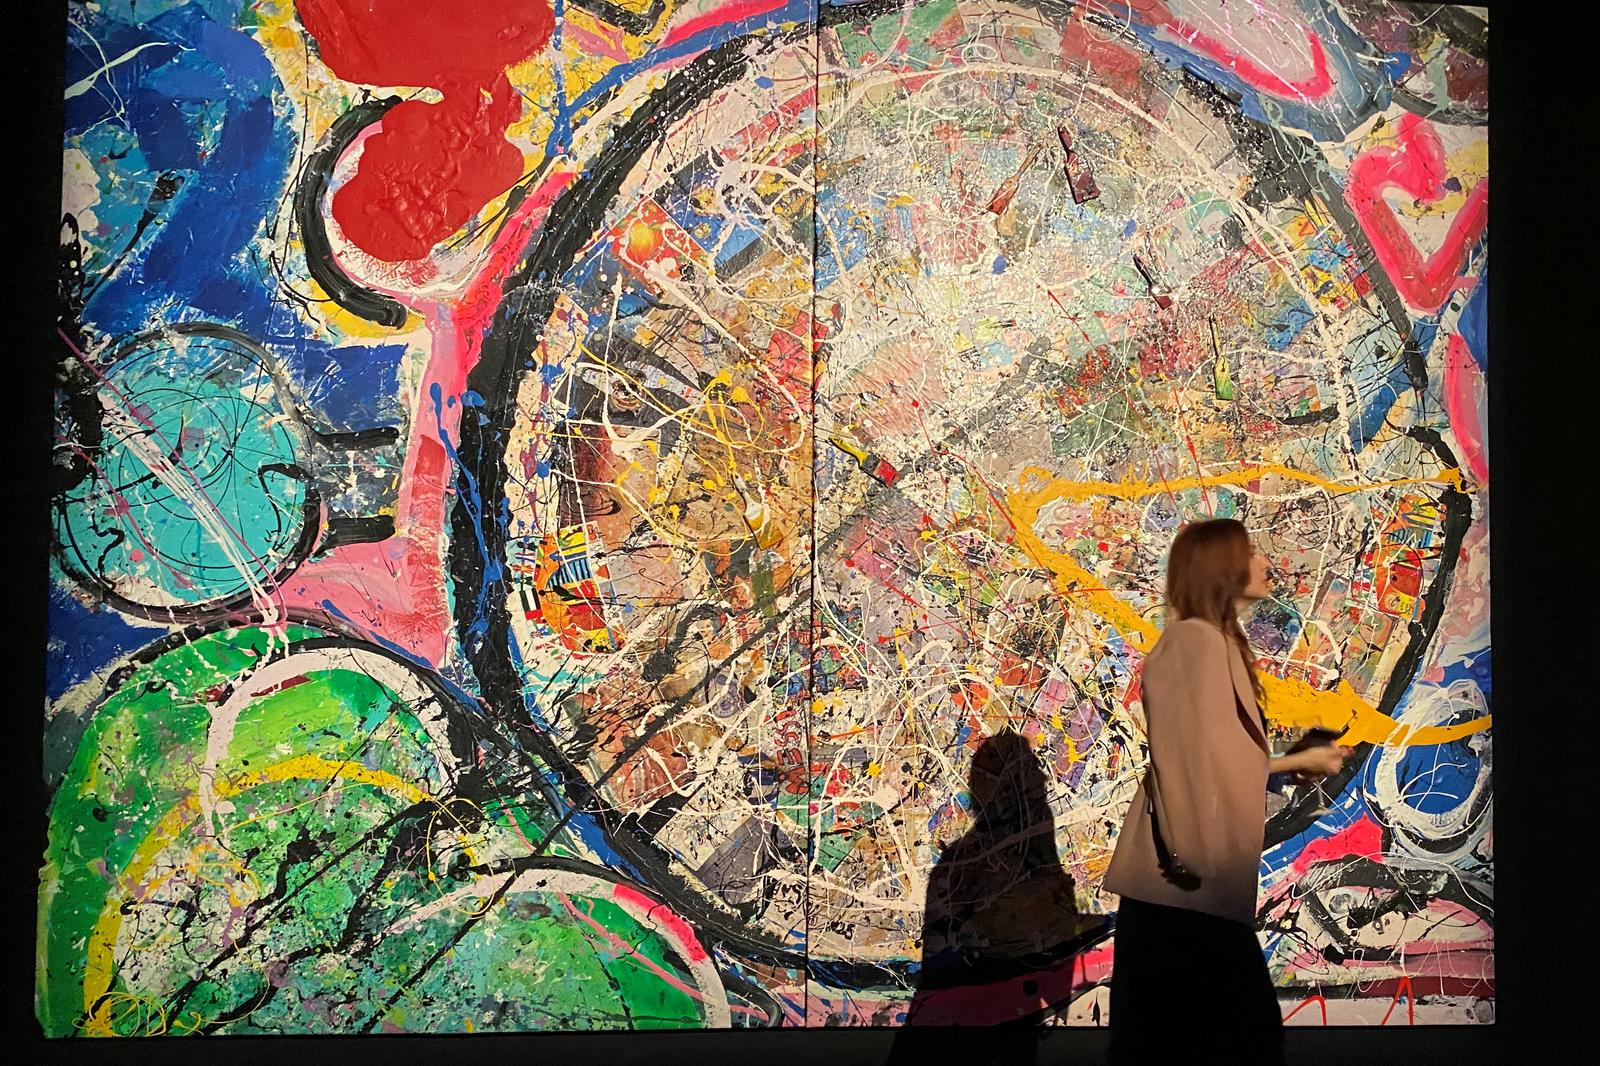 Artwork from world's largest canvas painting sells for $62 million in Dubai